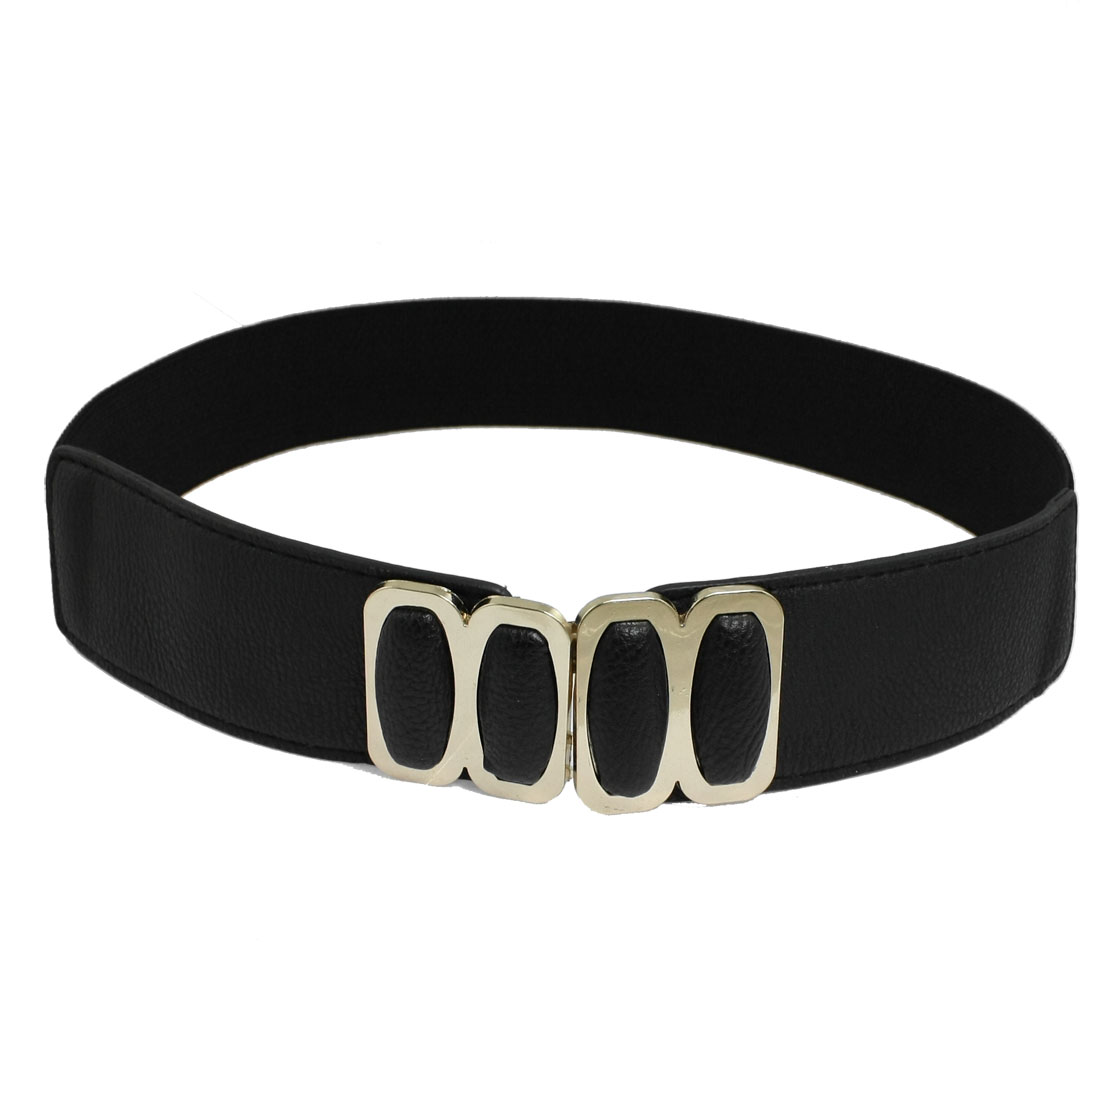 Black Elastic Band Faux Leather Cinch Waist Belt for Lady